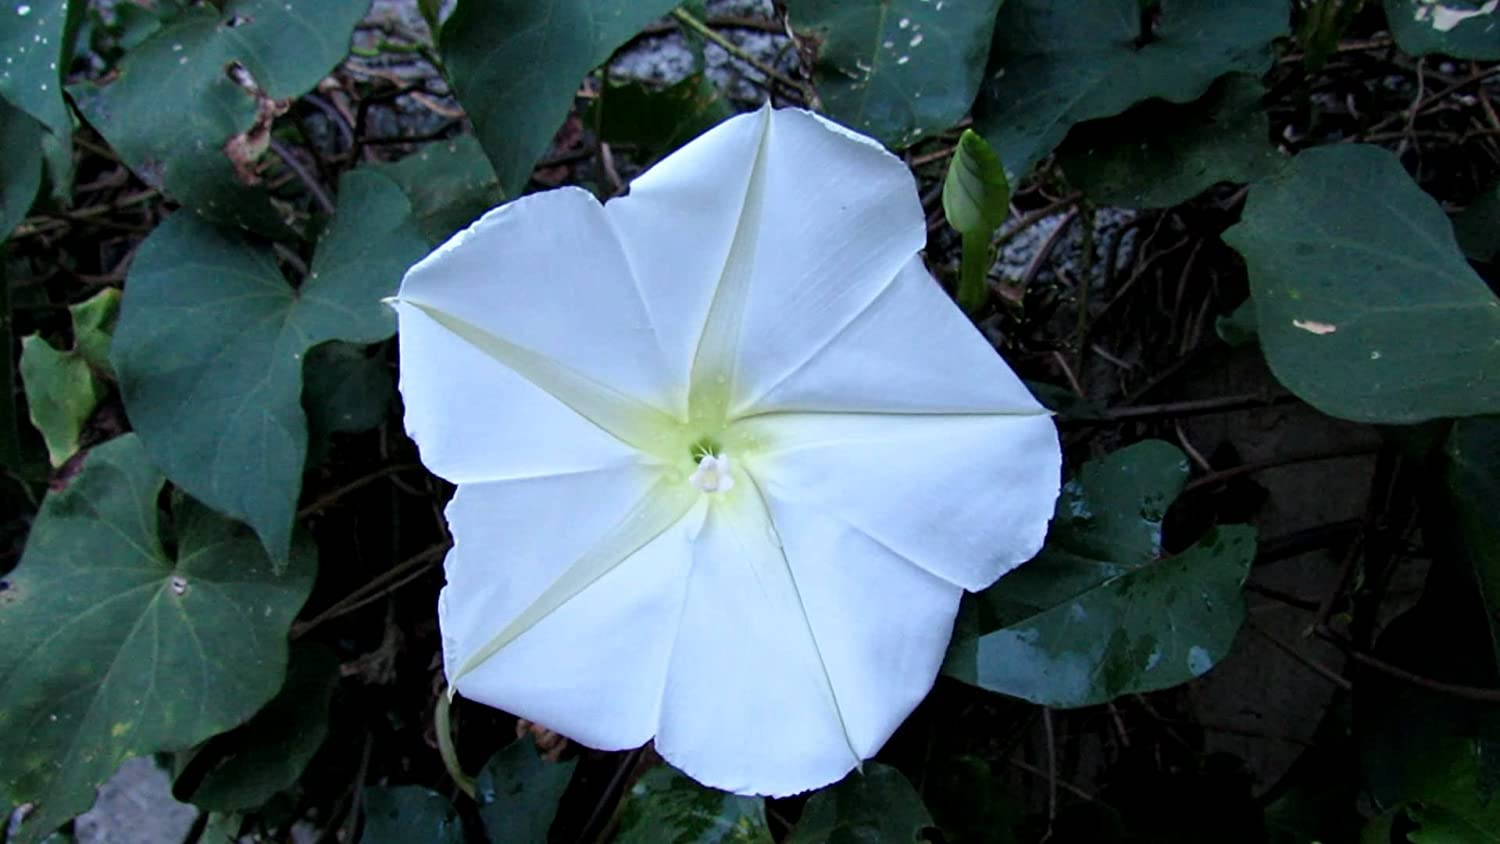 Amazon com : 10 Ipomoea Alba Morning Glory Seeds/Giant White